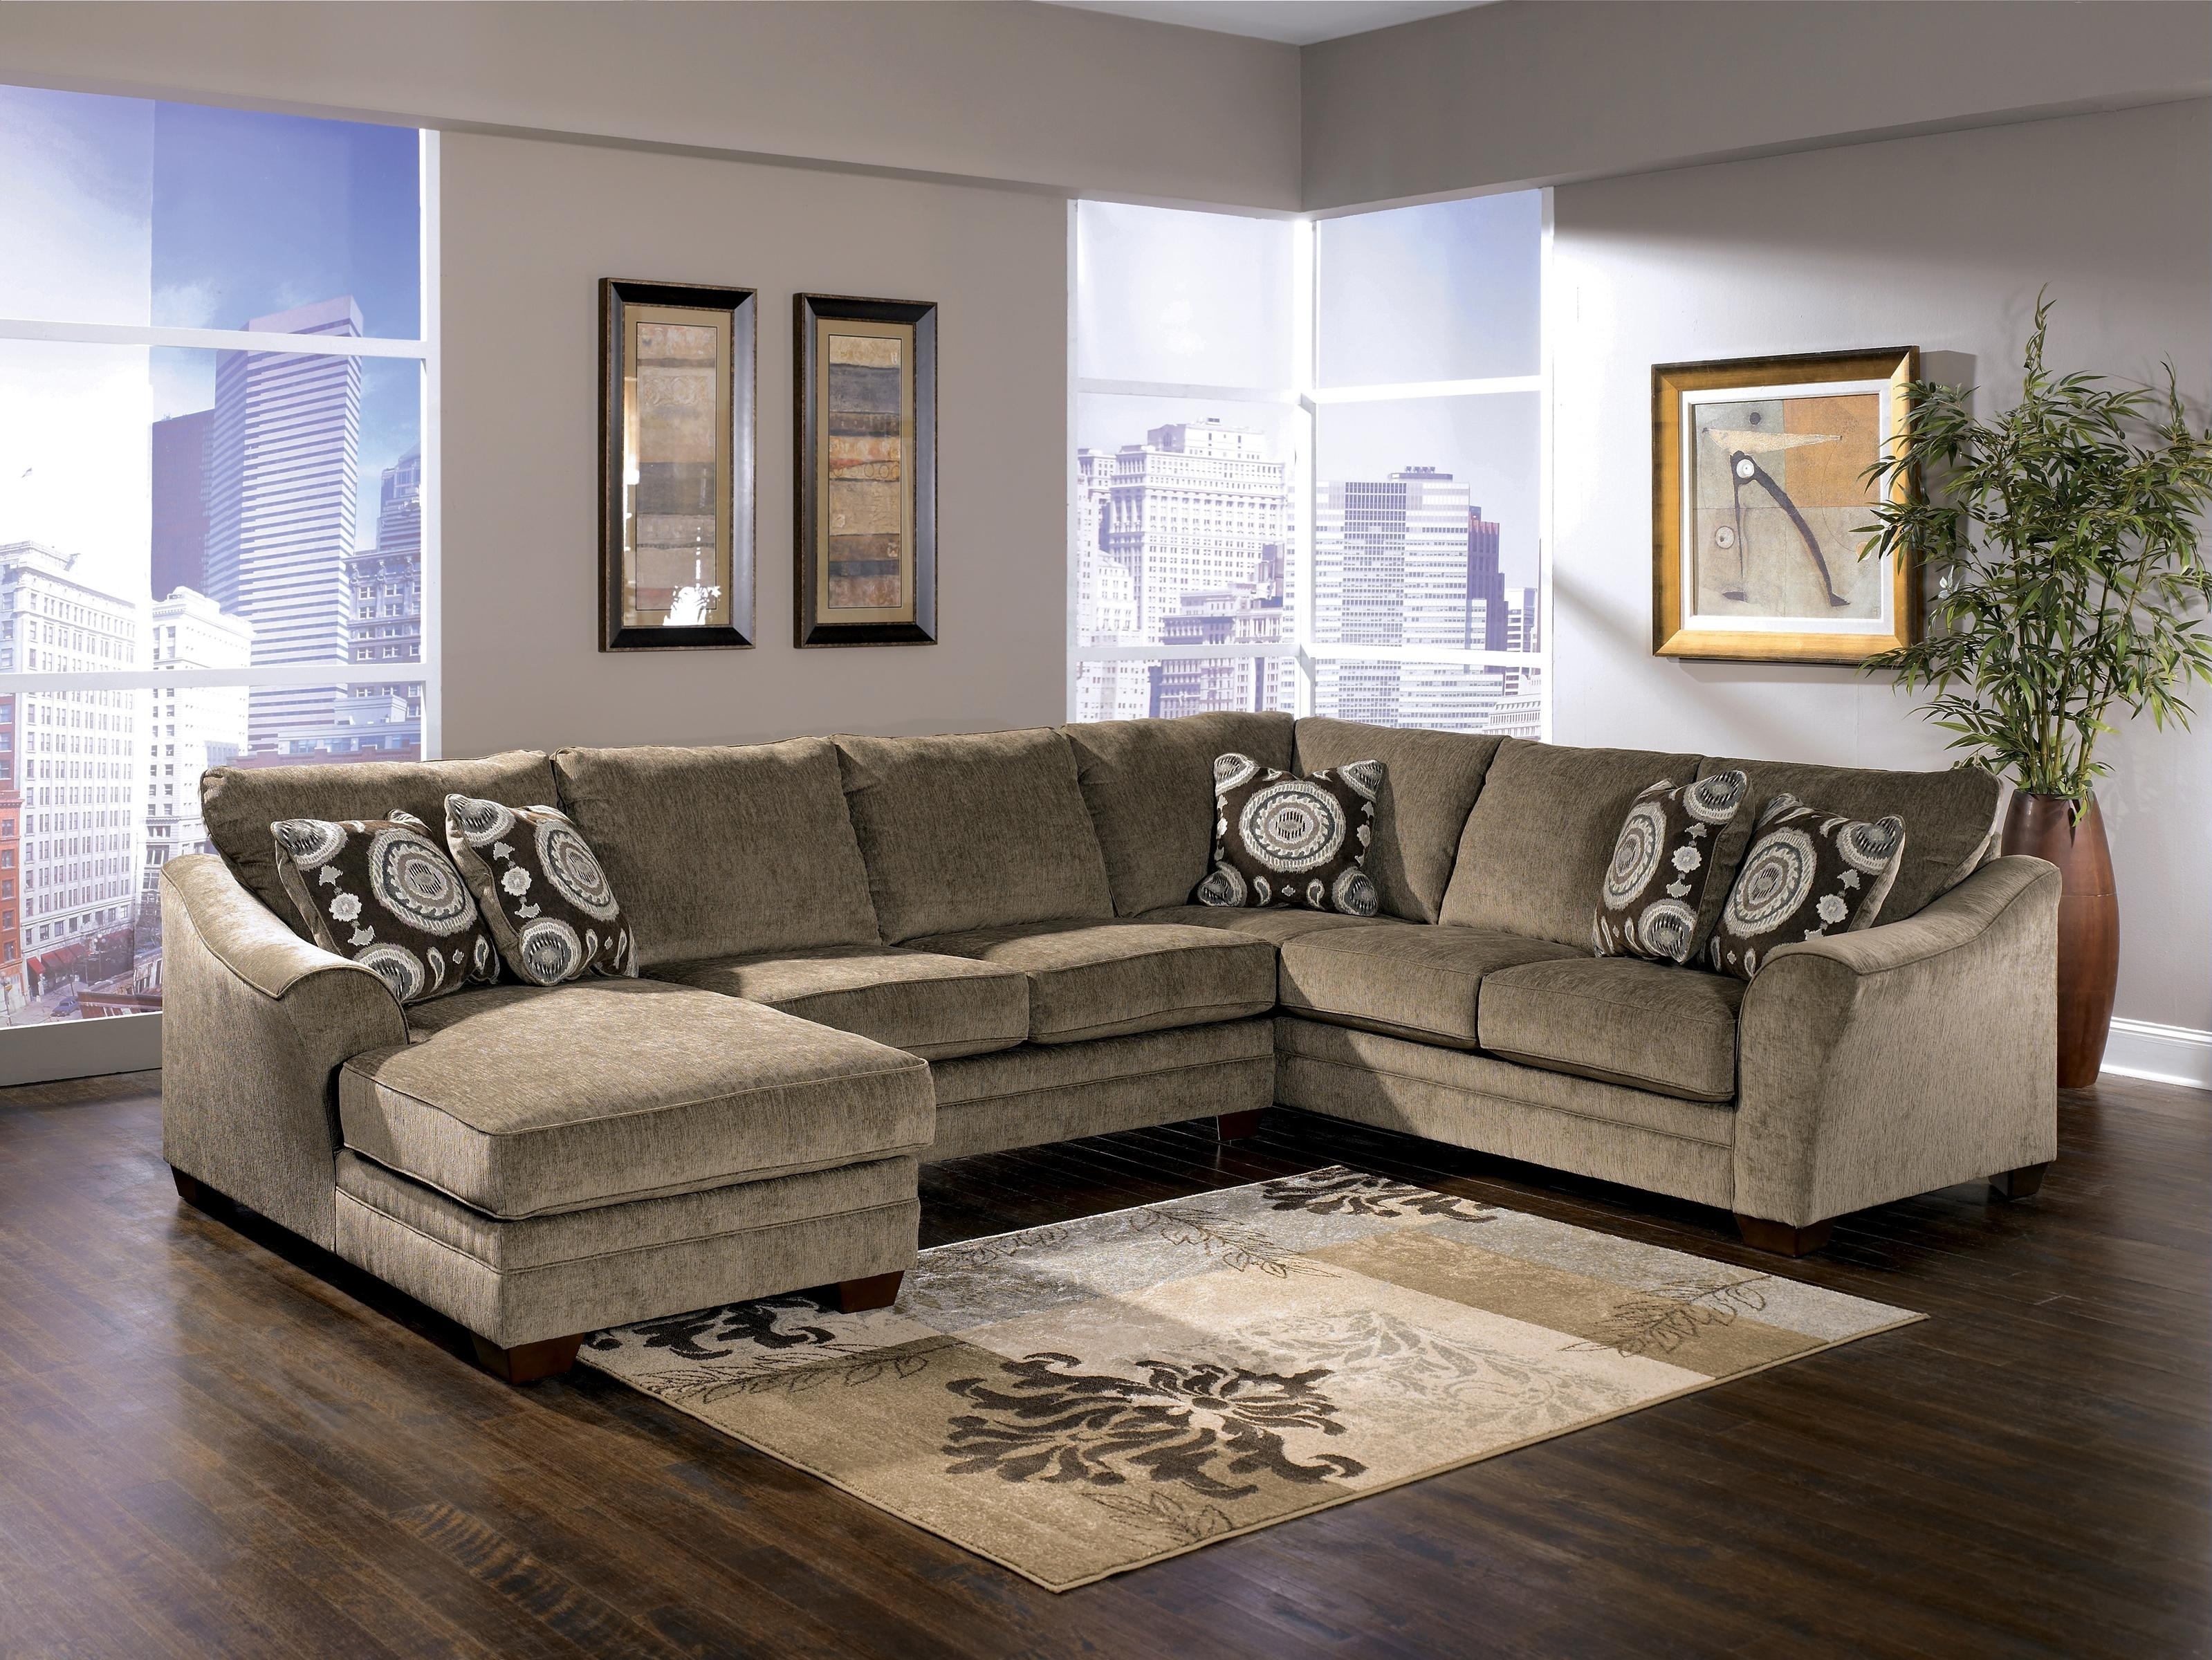 Home Decor Jackson Tn Beautiful Sofa Stores Memphis Tn | Home Ideas in Jackson Tn Sectional Sofas (Image 5 of 10)